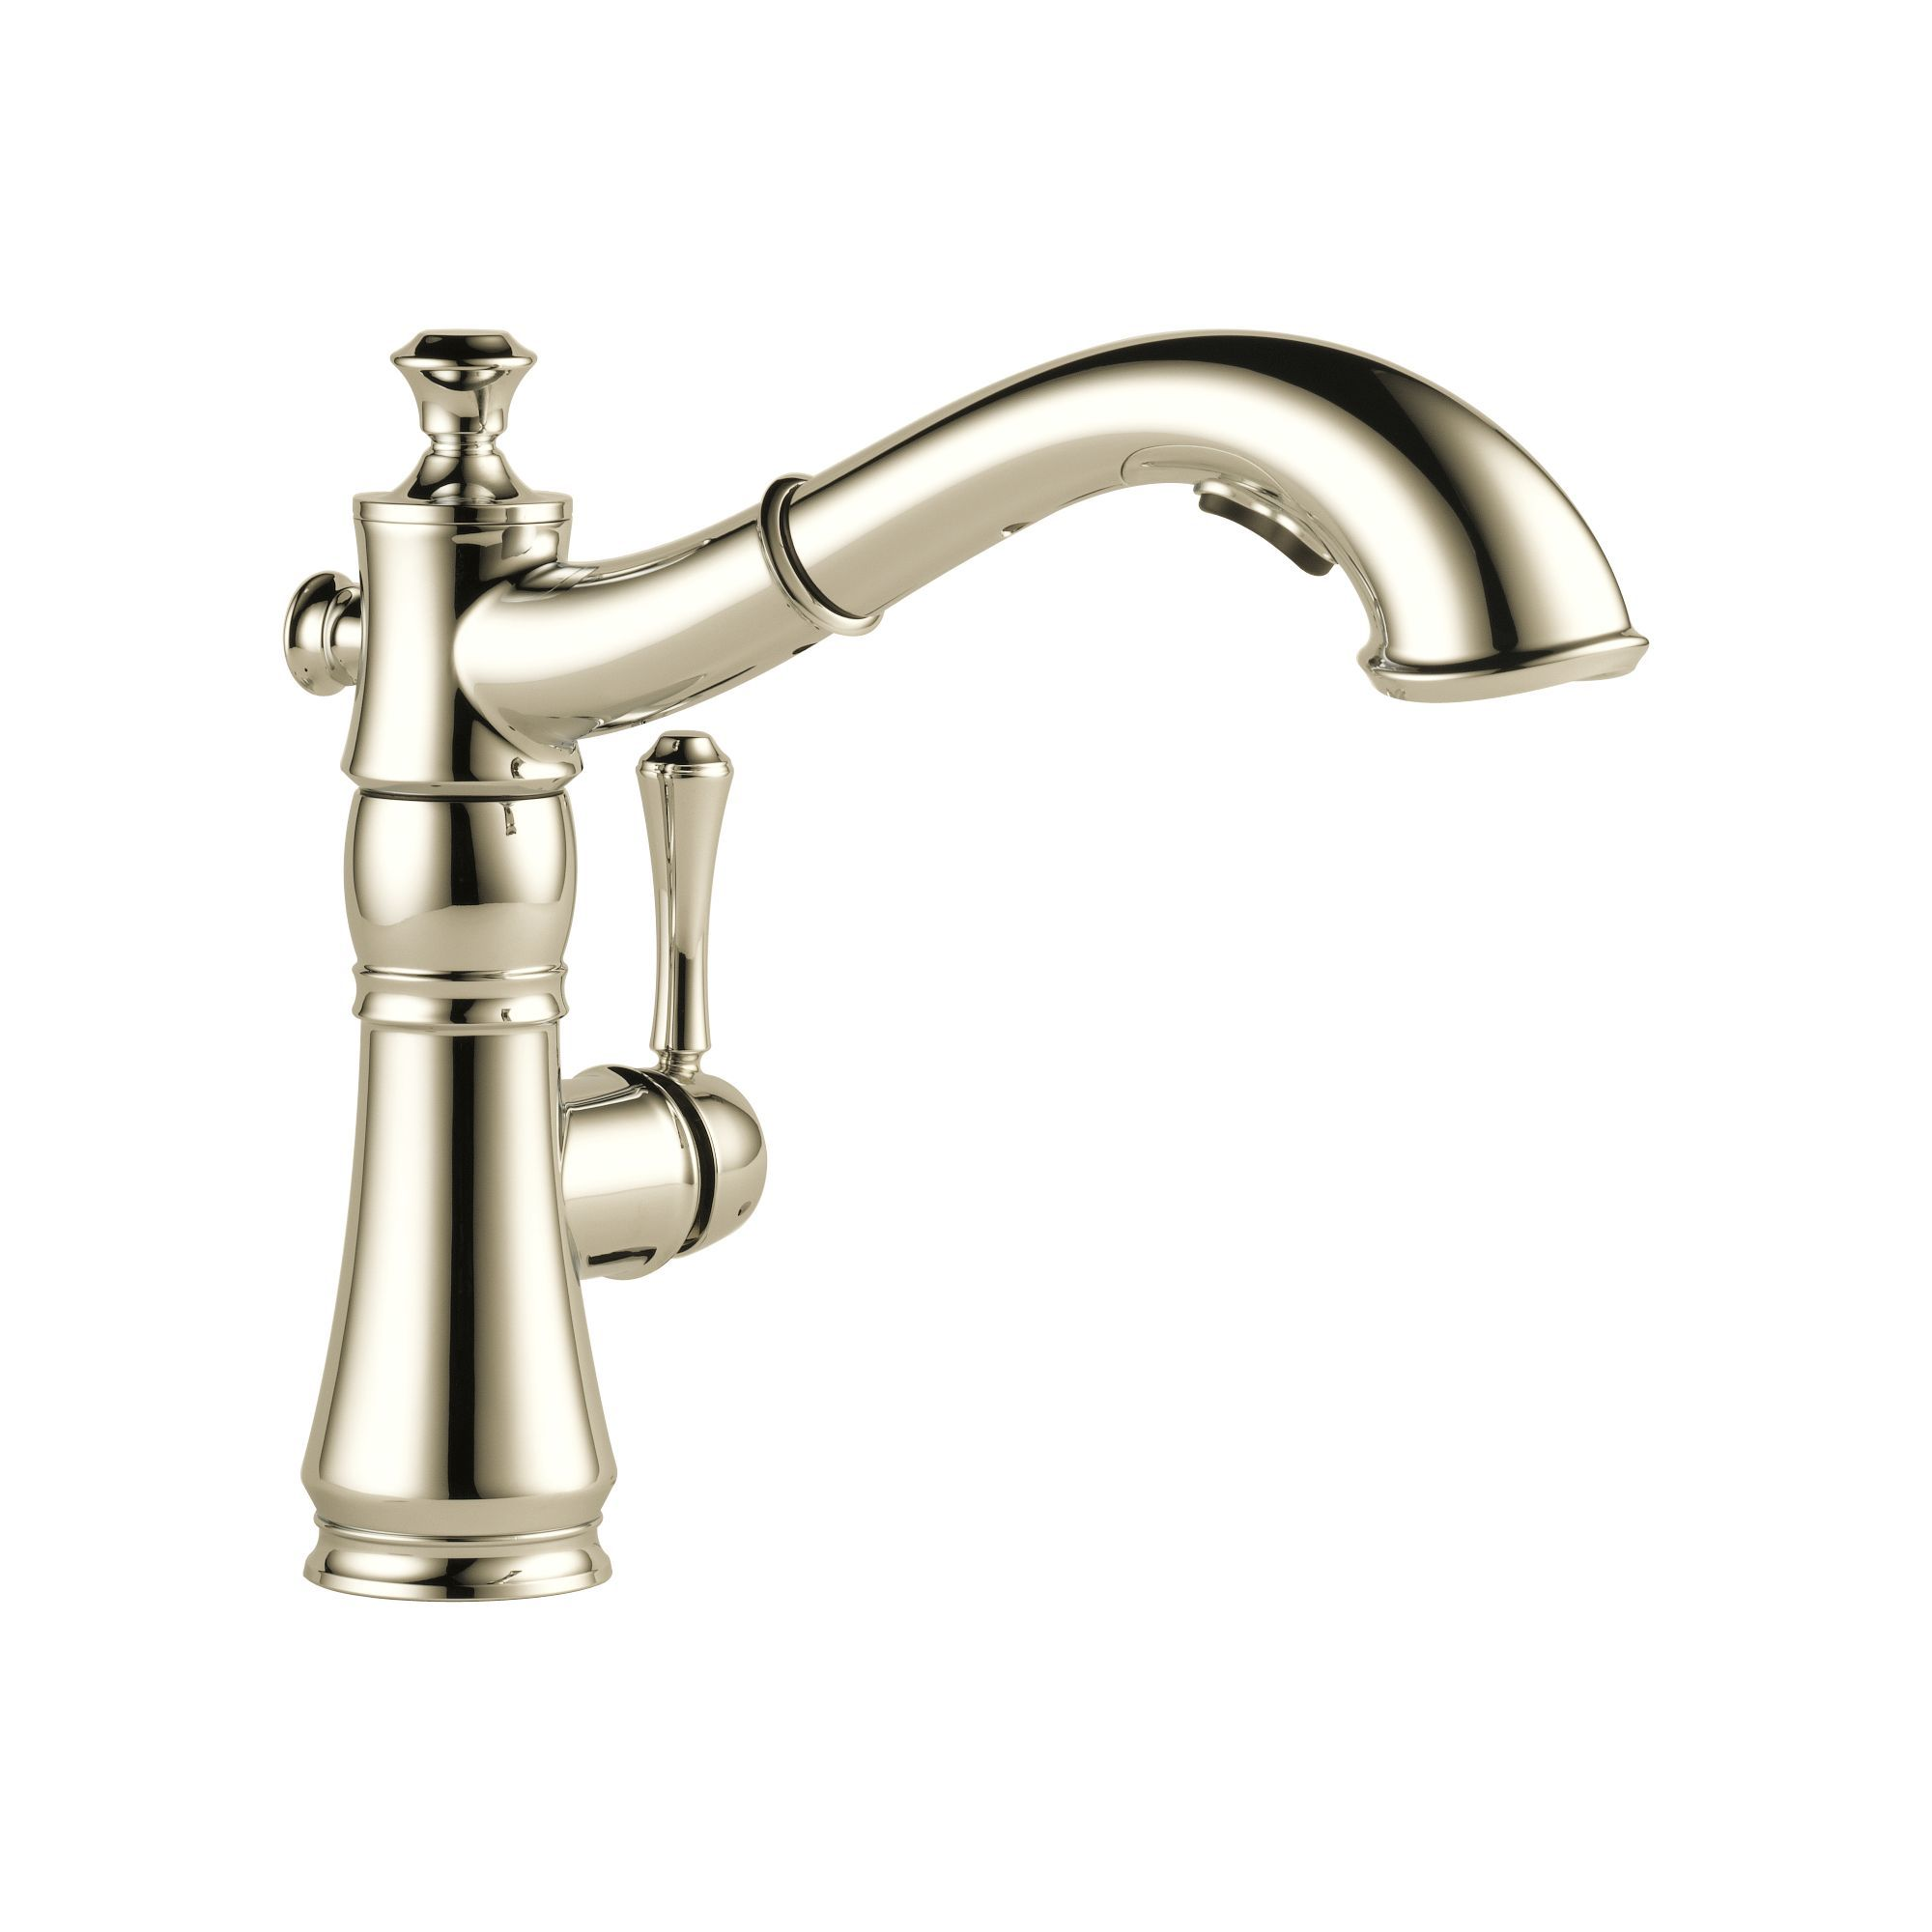 Delta PNDST Brilliance Polished Nickel Cassidy PullOut - Delta valdosta kitchen faucet